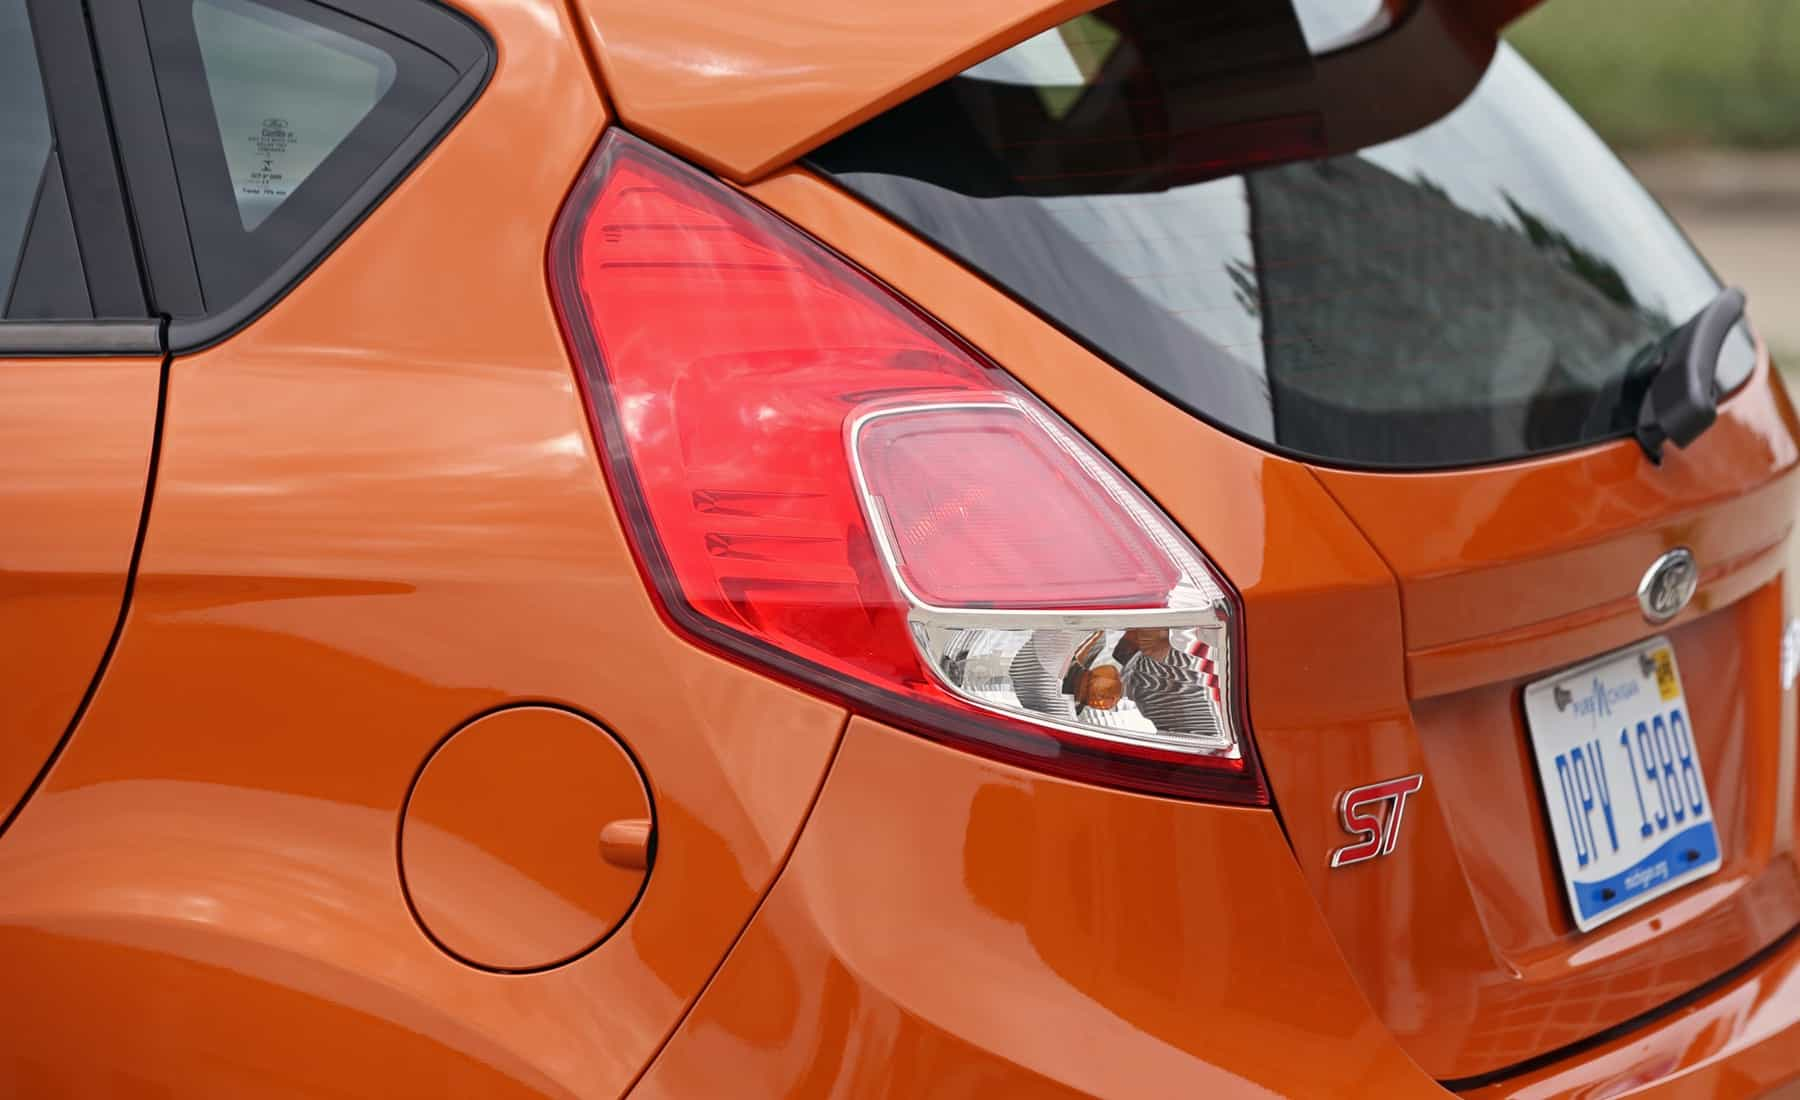 2017 Ford Fiesta ST Exterior View Taillight (Photo 36 of 47)